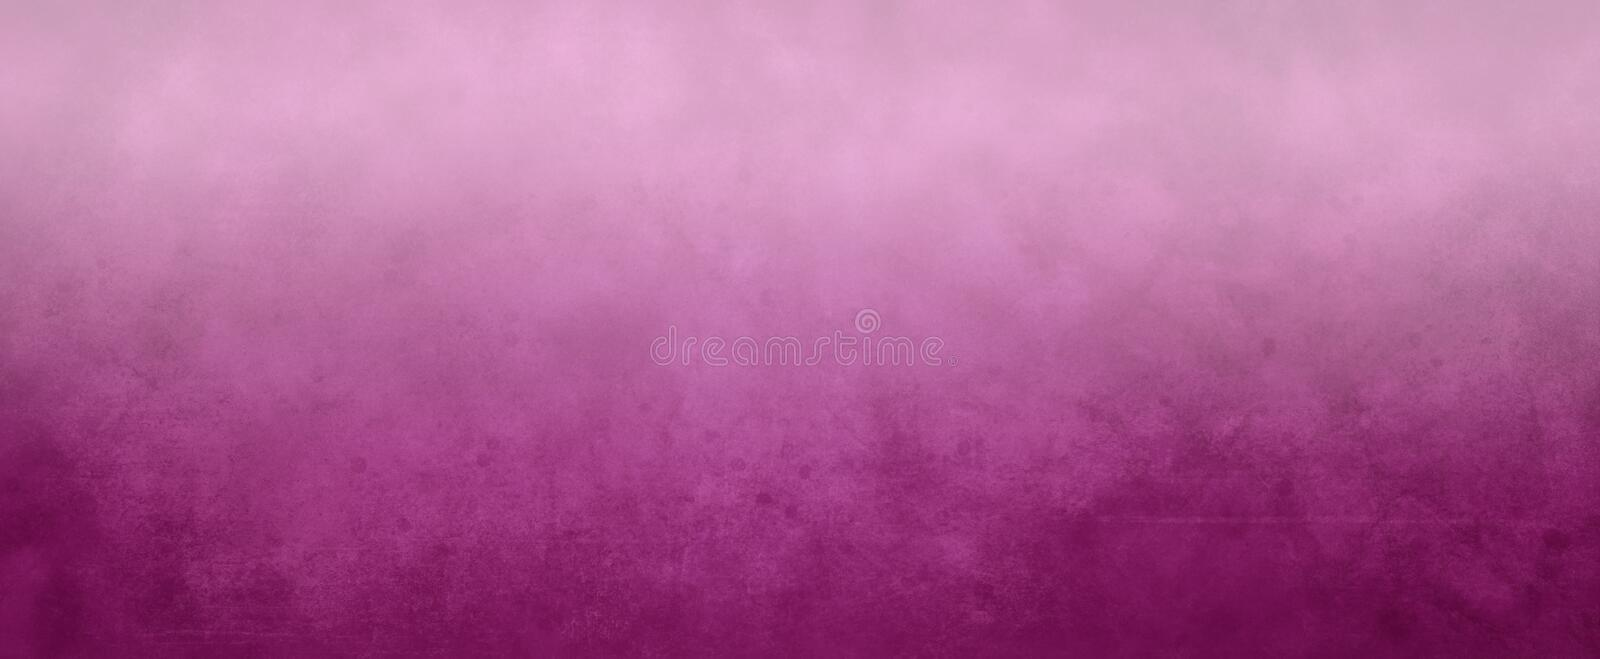 Pink textured background with soft foggy white gradient blur on top, border, has faint scratch texture and light blurry design. Elegant pink textured background royalty free illustration